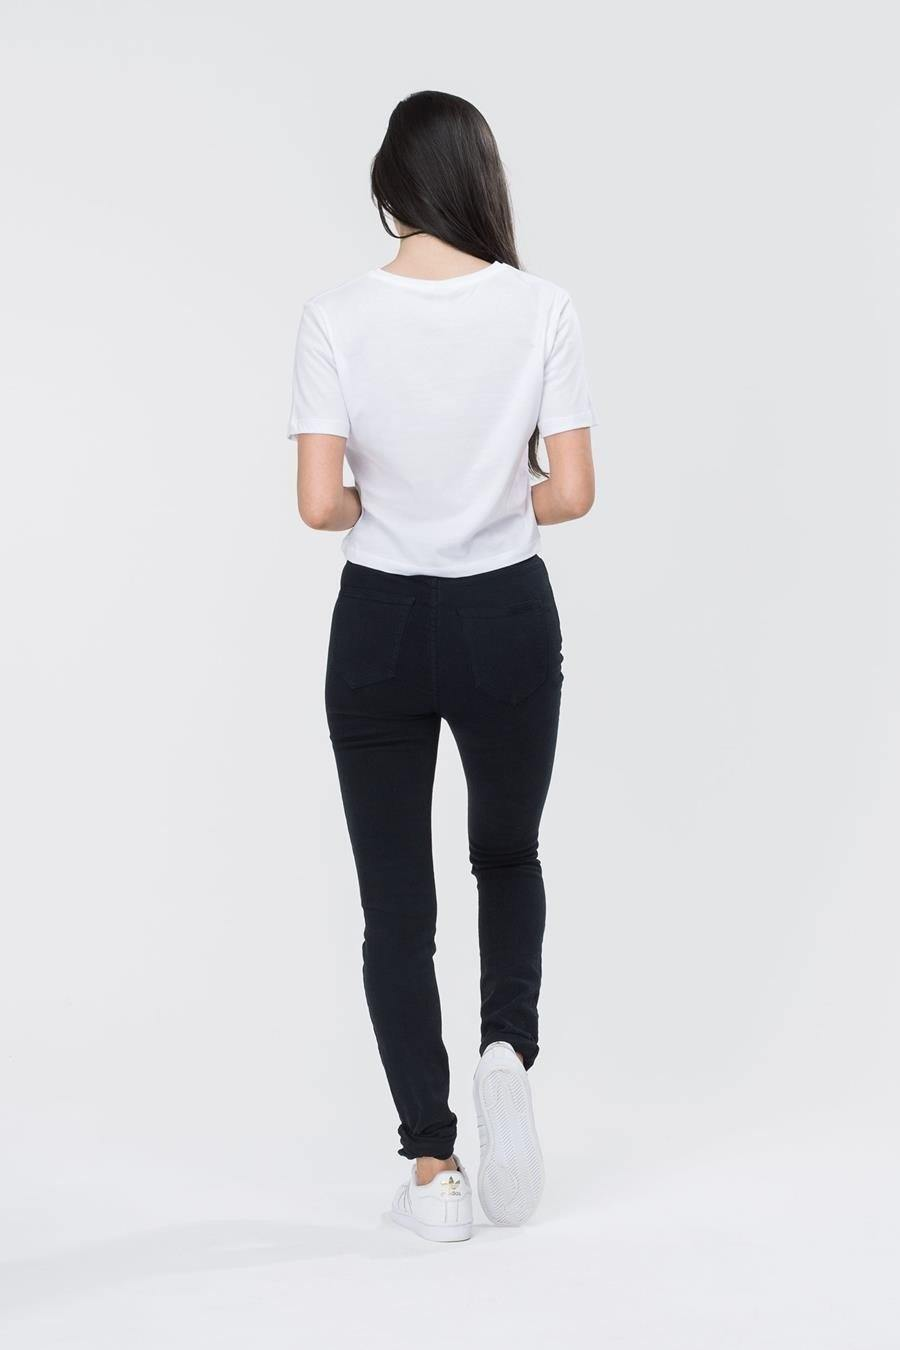 HYPE White/Black Hype Script Women's Crop T-Shirt